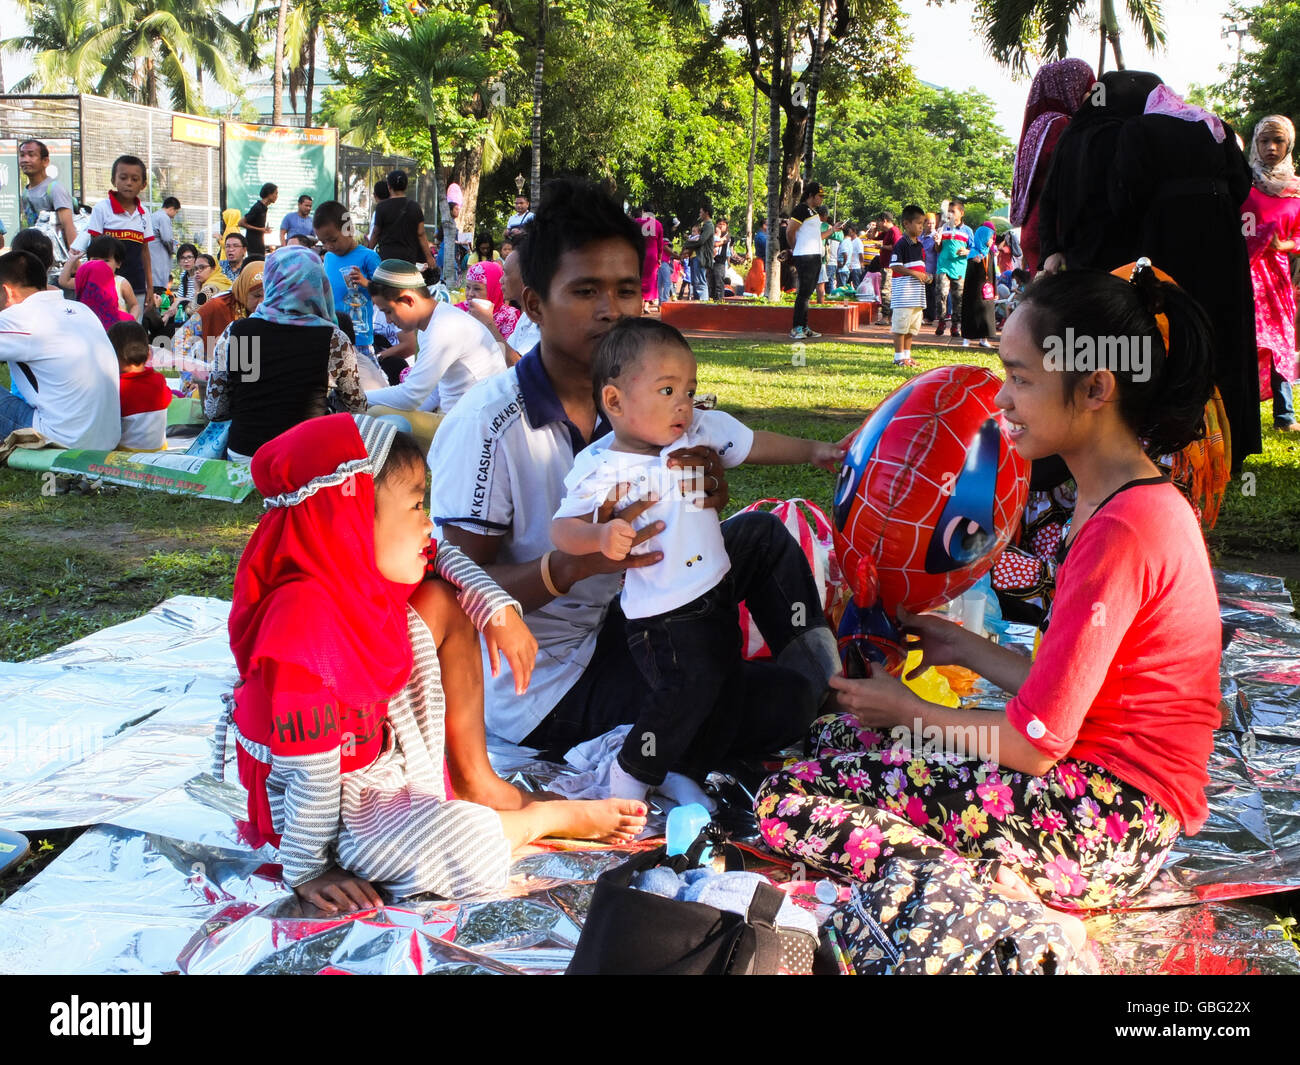 Manila, Philippines. 06th July, 2016. Muslim families, enjoying the feast of Eid al-Fitr by means of bonding with - Stock Image